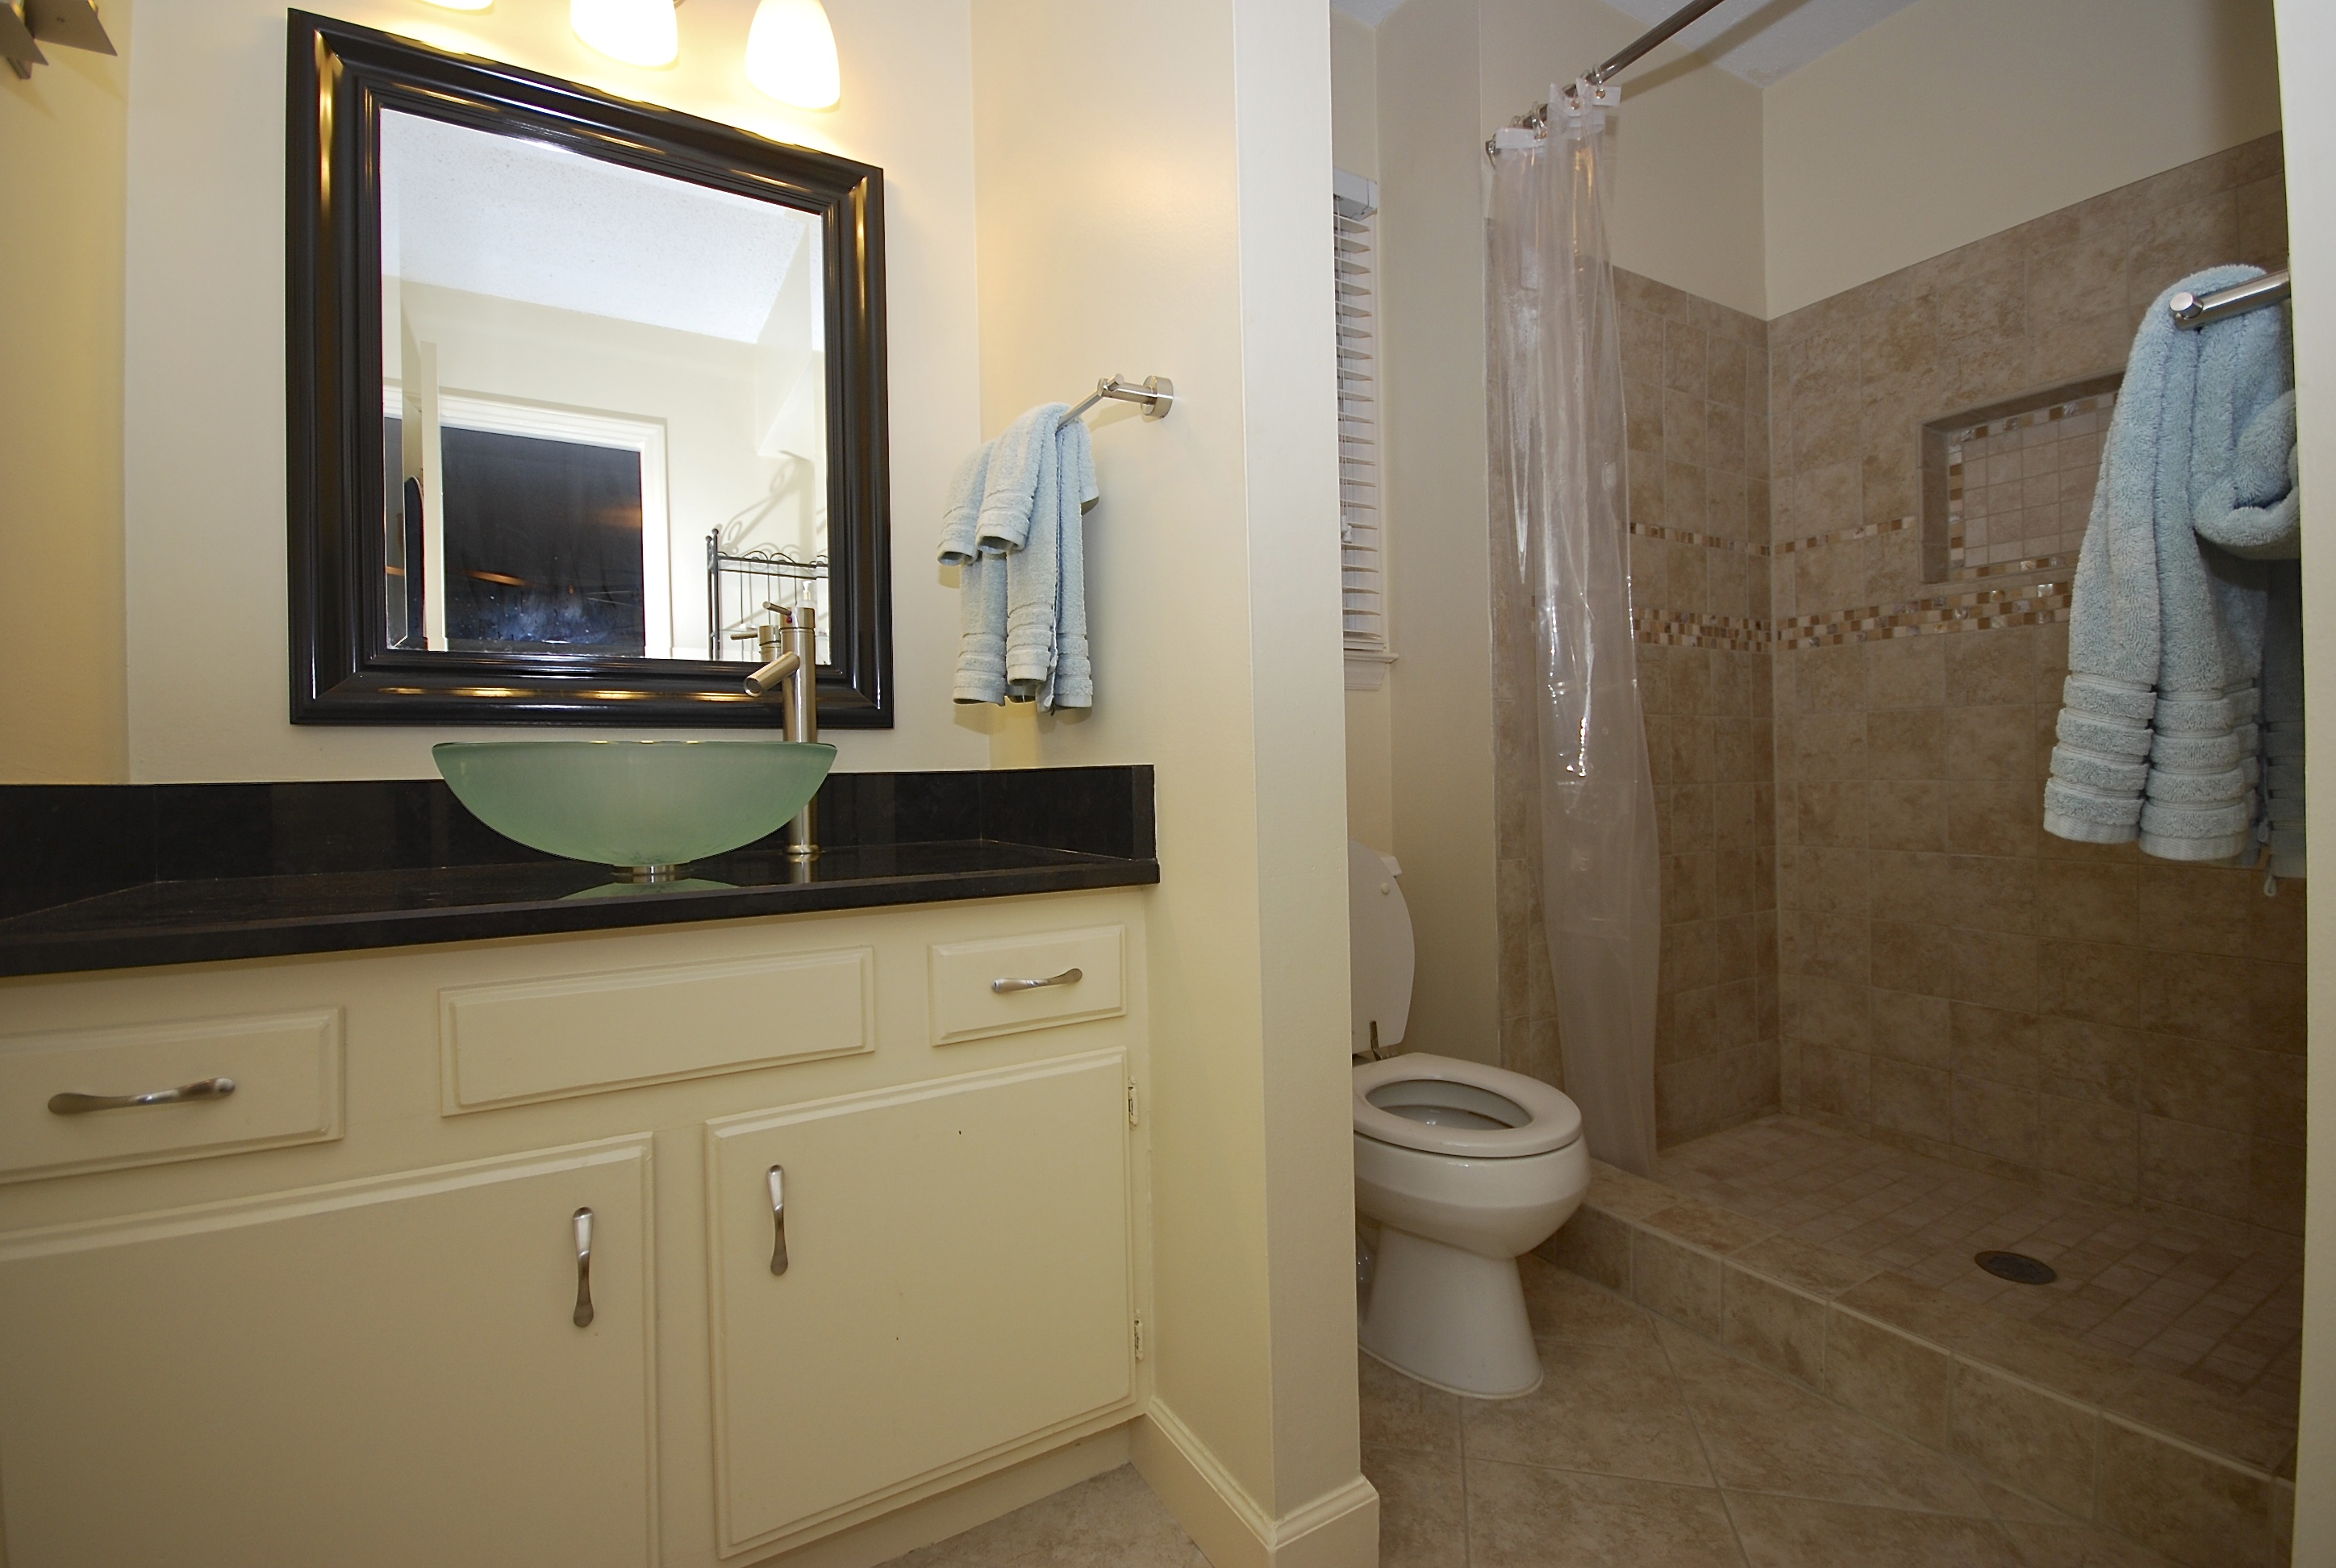 Bathroom Sinks Charlotte Nc ranch home for sale near southpark, charlotte nc - brandon forest!